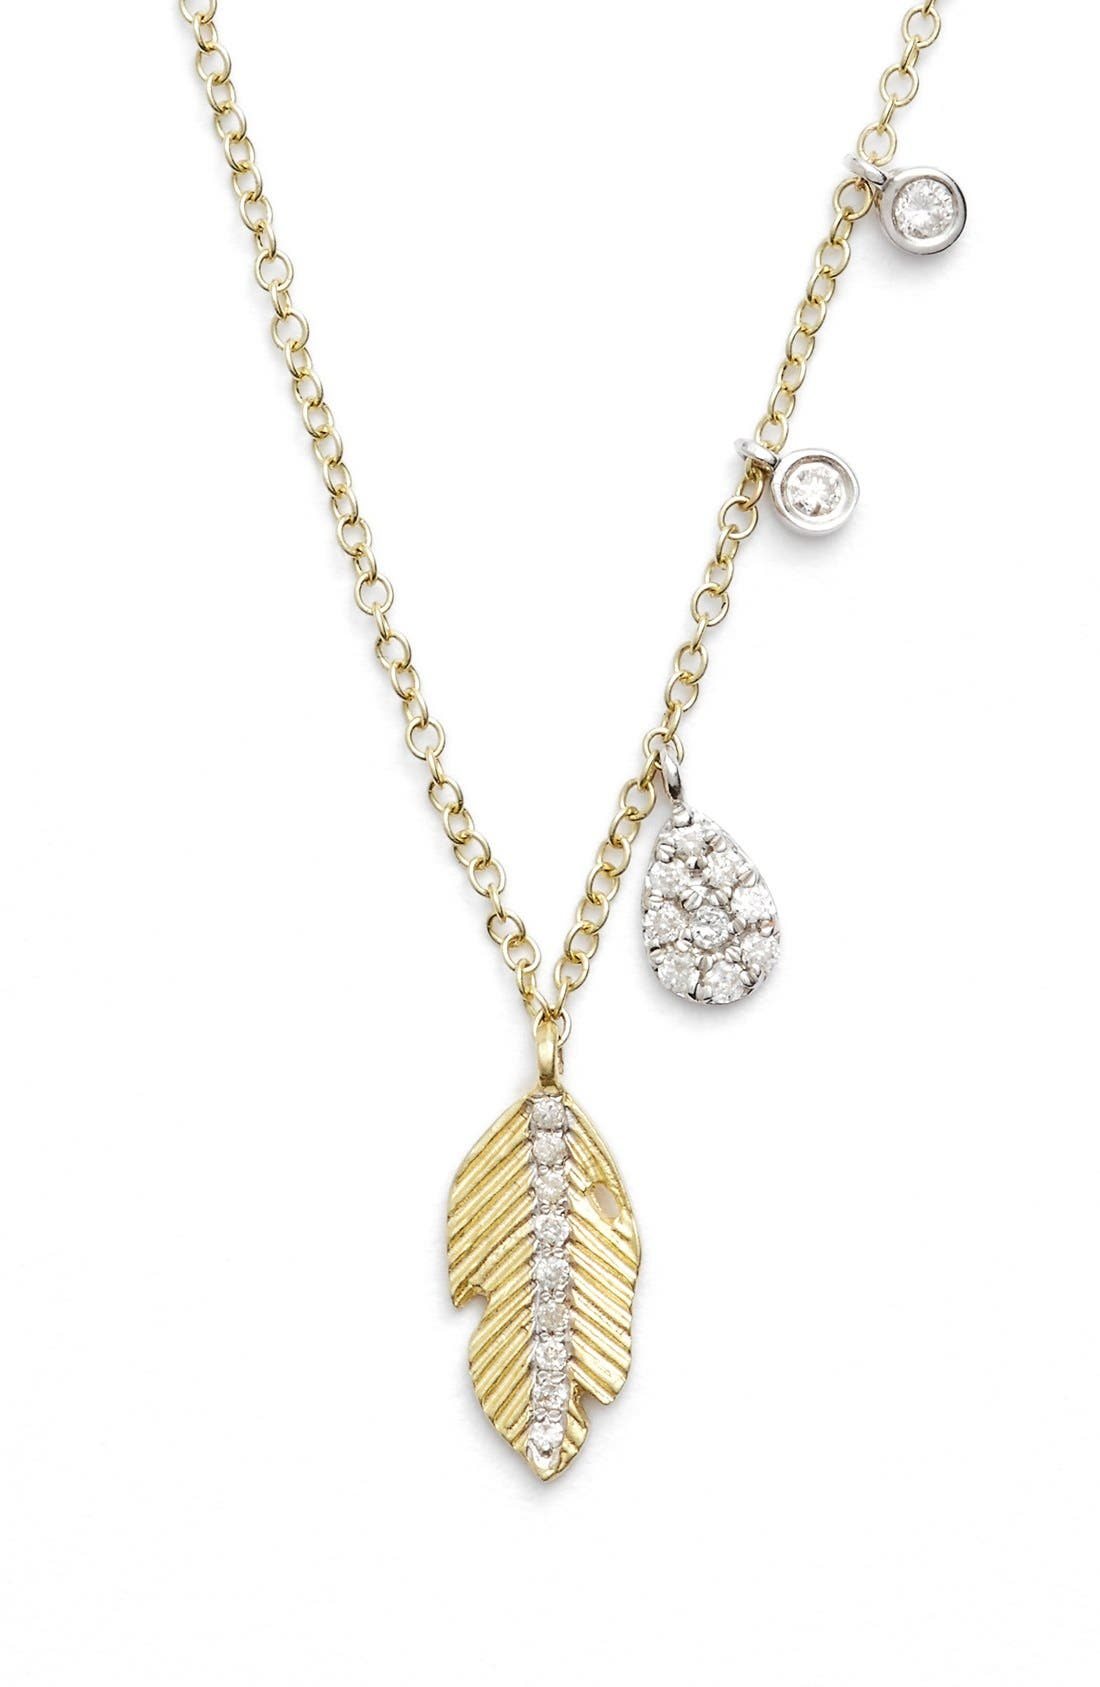 Leaf Pendant Necklace,                         Main,                         color, YELLOW GOLD/ WHITE GOLD